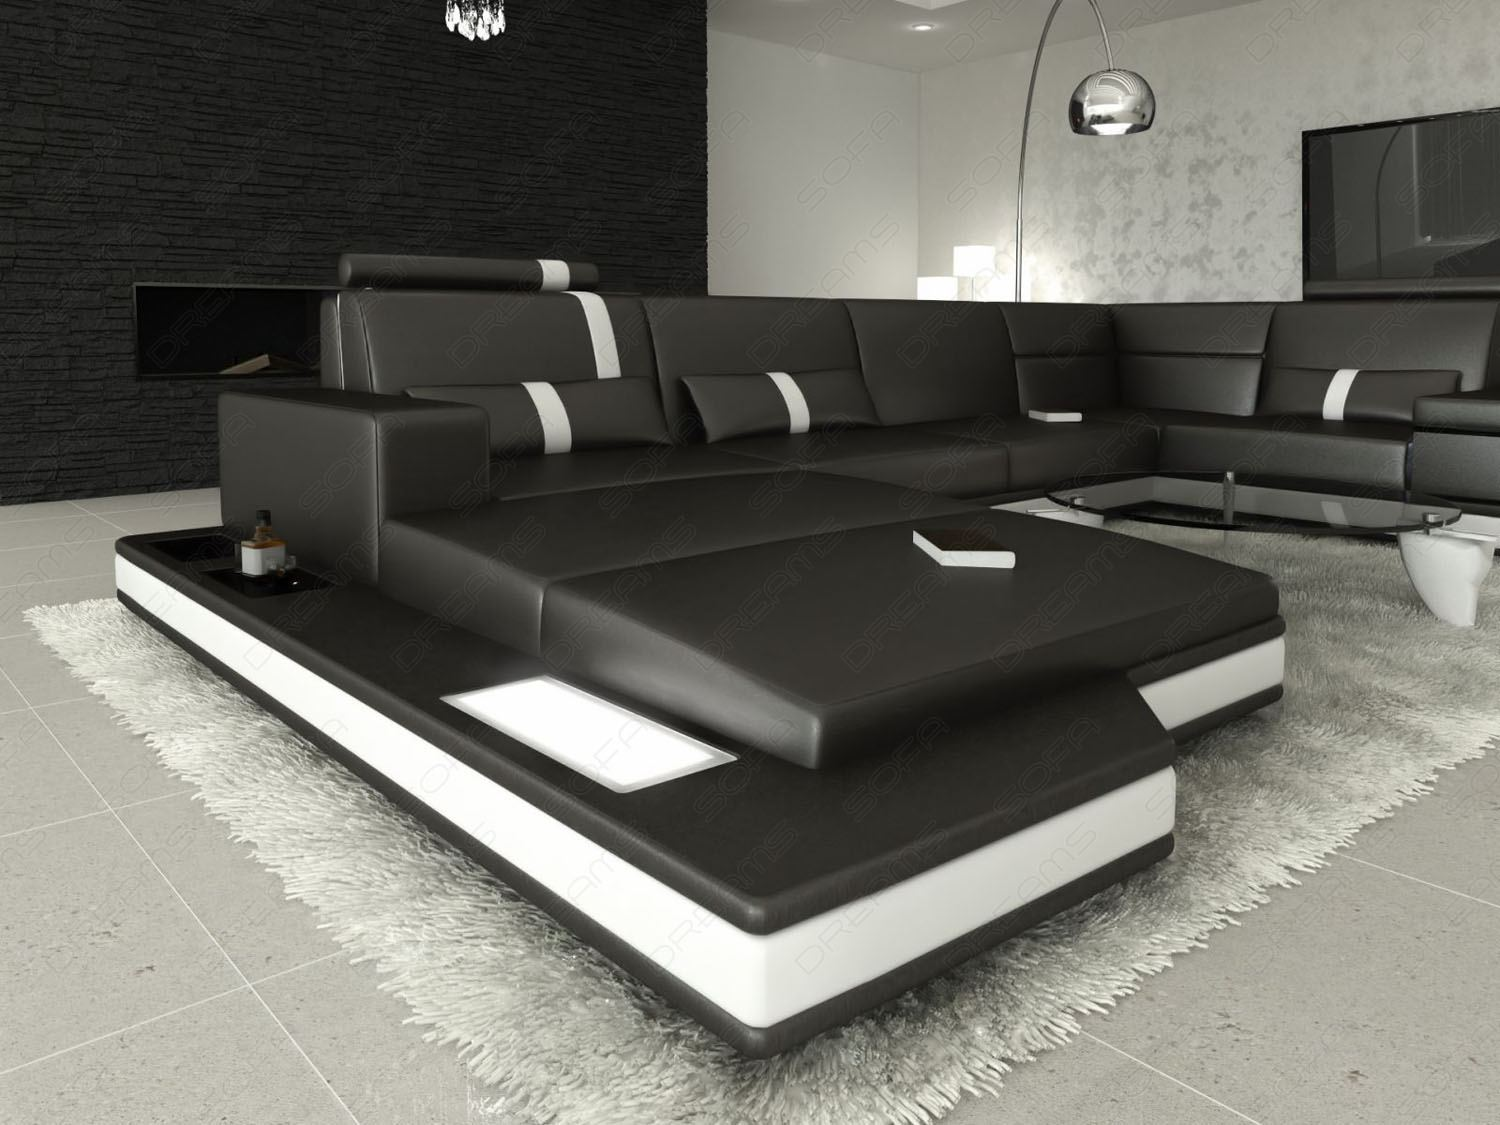 ledersofa messana designersofa mit beleuchtung schwarz eckcouch sofa ebay. Black Bedroom Furniture Sets. Home Design Ideas